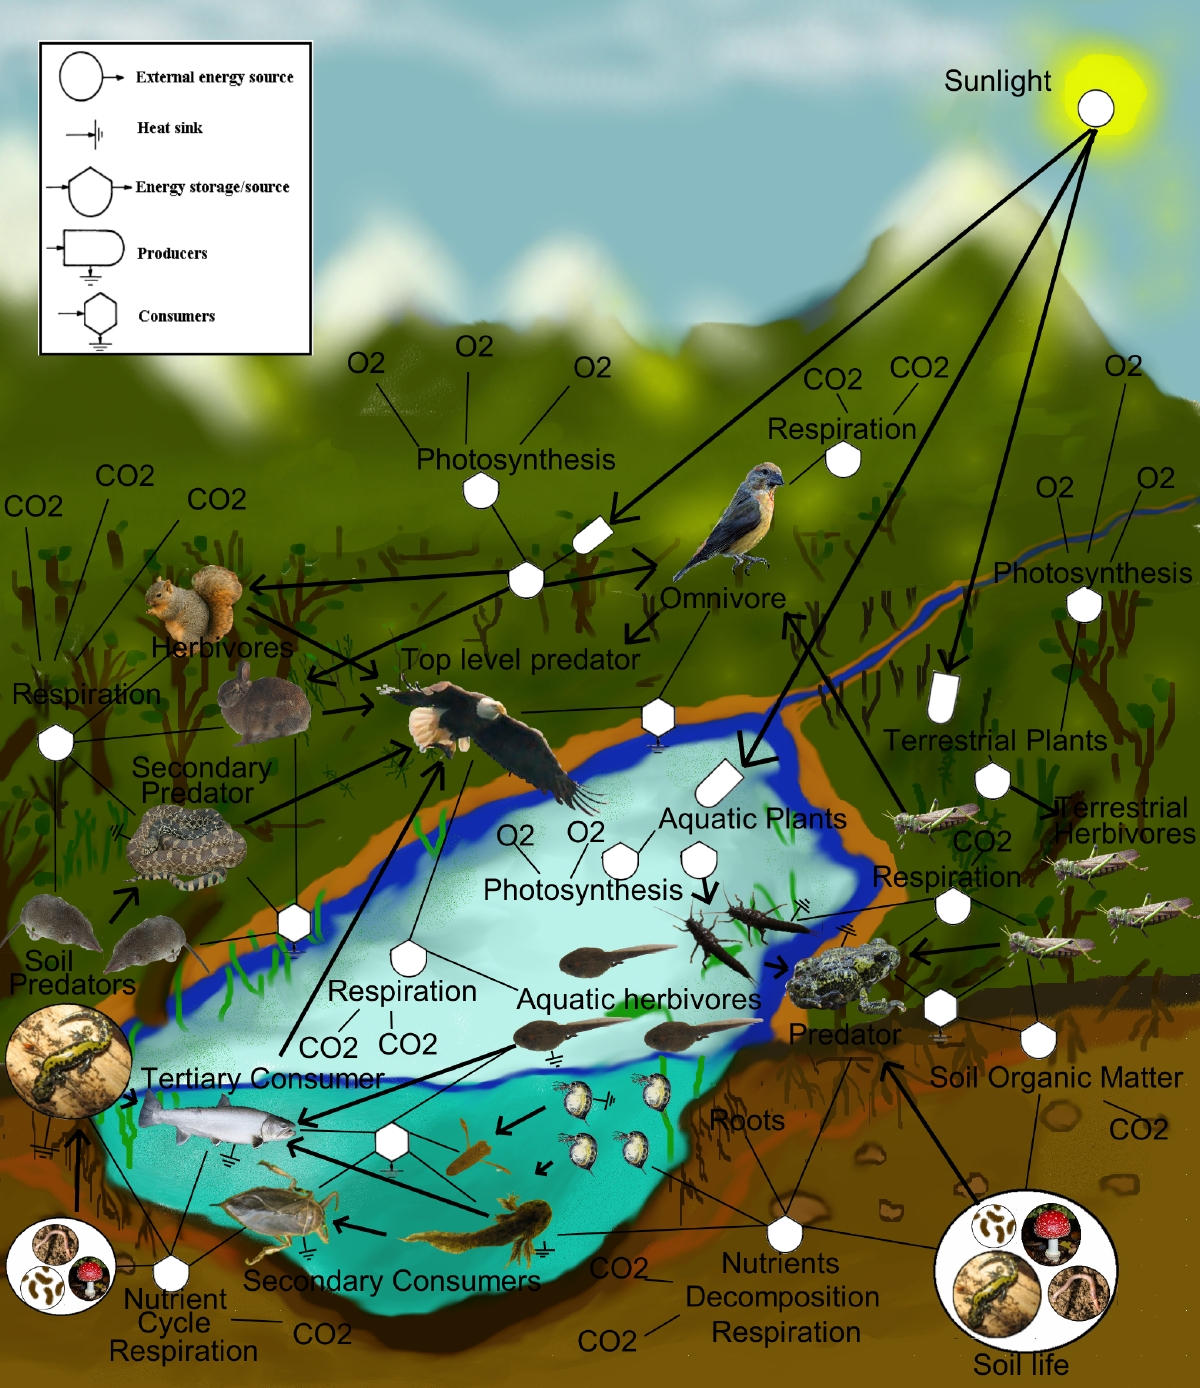 Pond Ecosystem Diagram http://agi.seaford.k12.de.us/sites/LFSdigital/units/Science%20Unit%20Topics/Ecosystems%20part%201.aspx